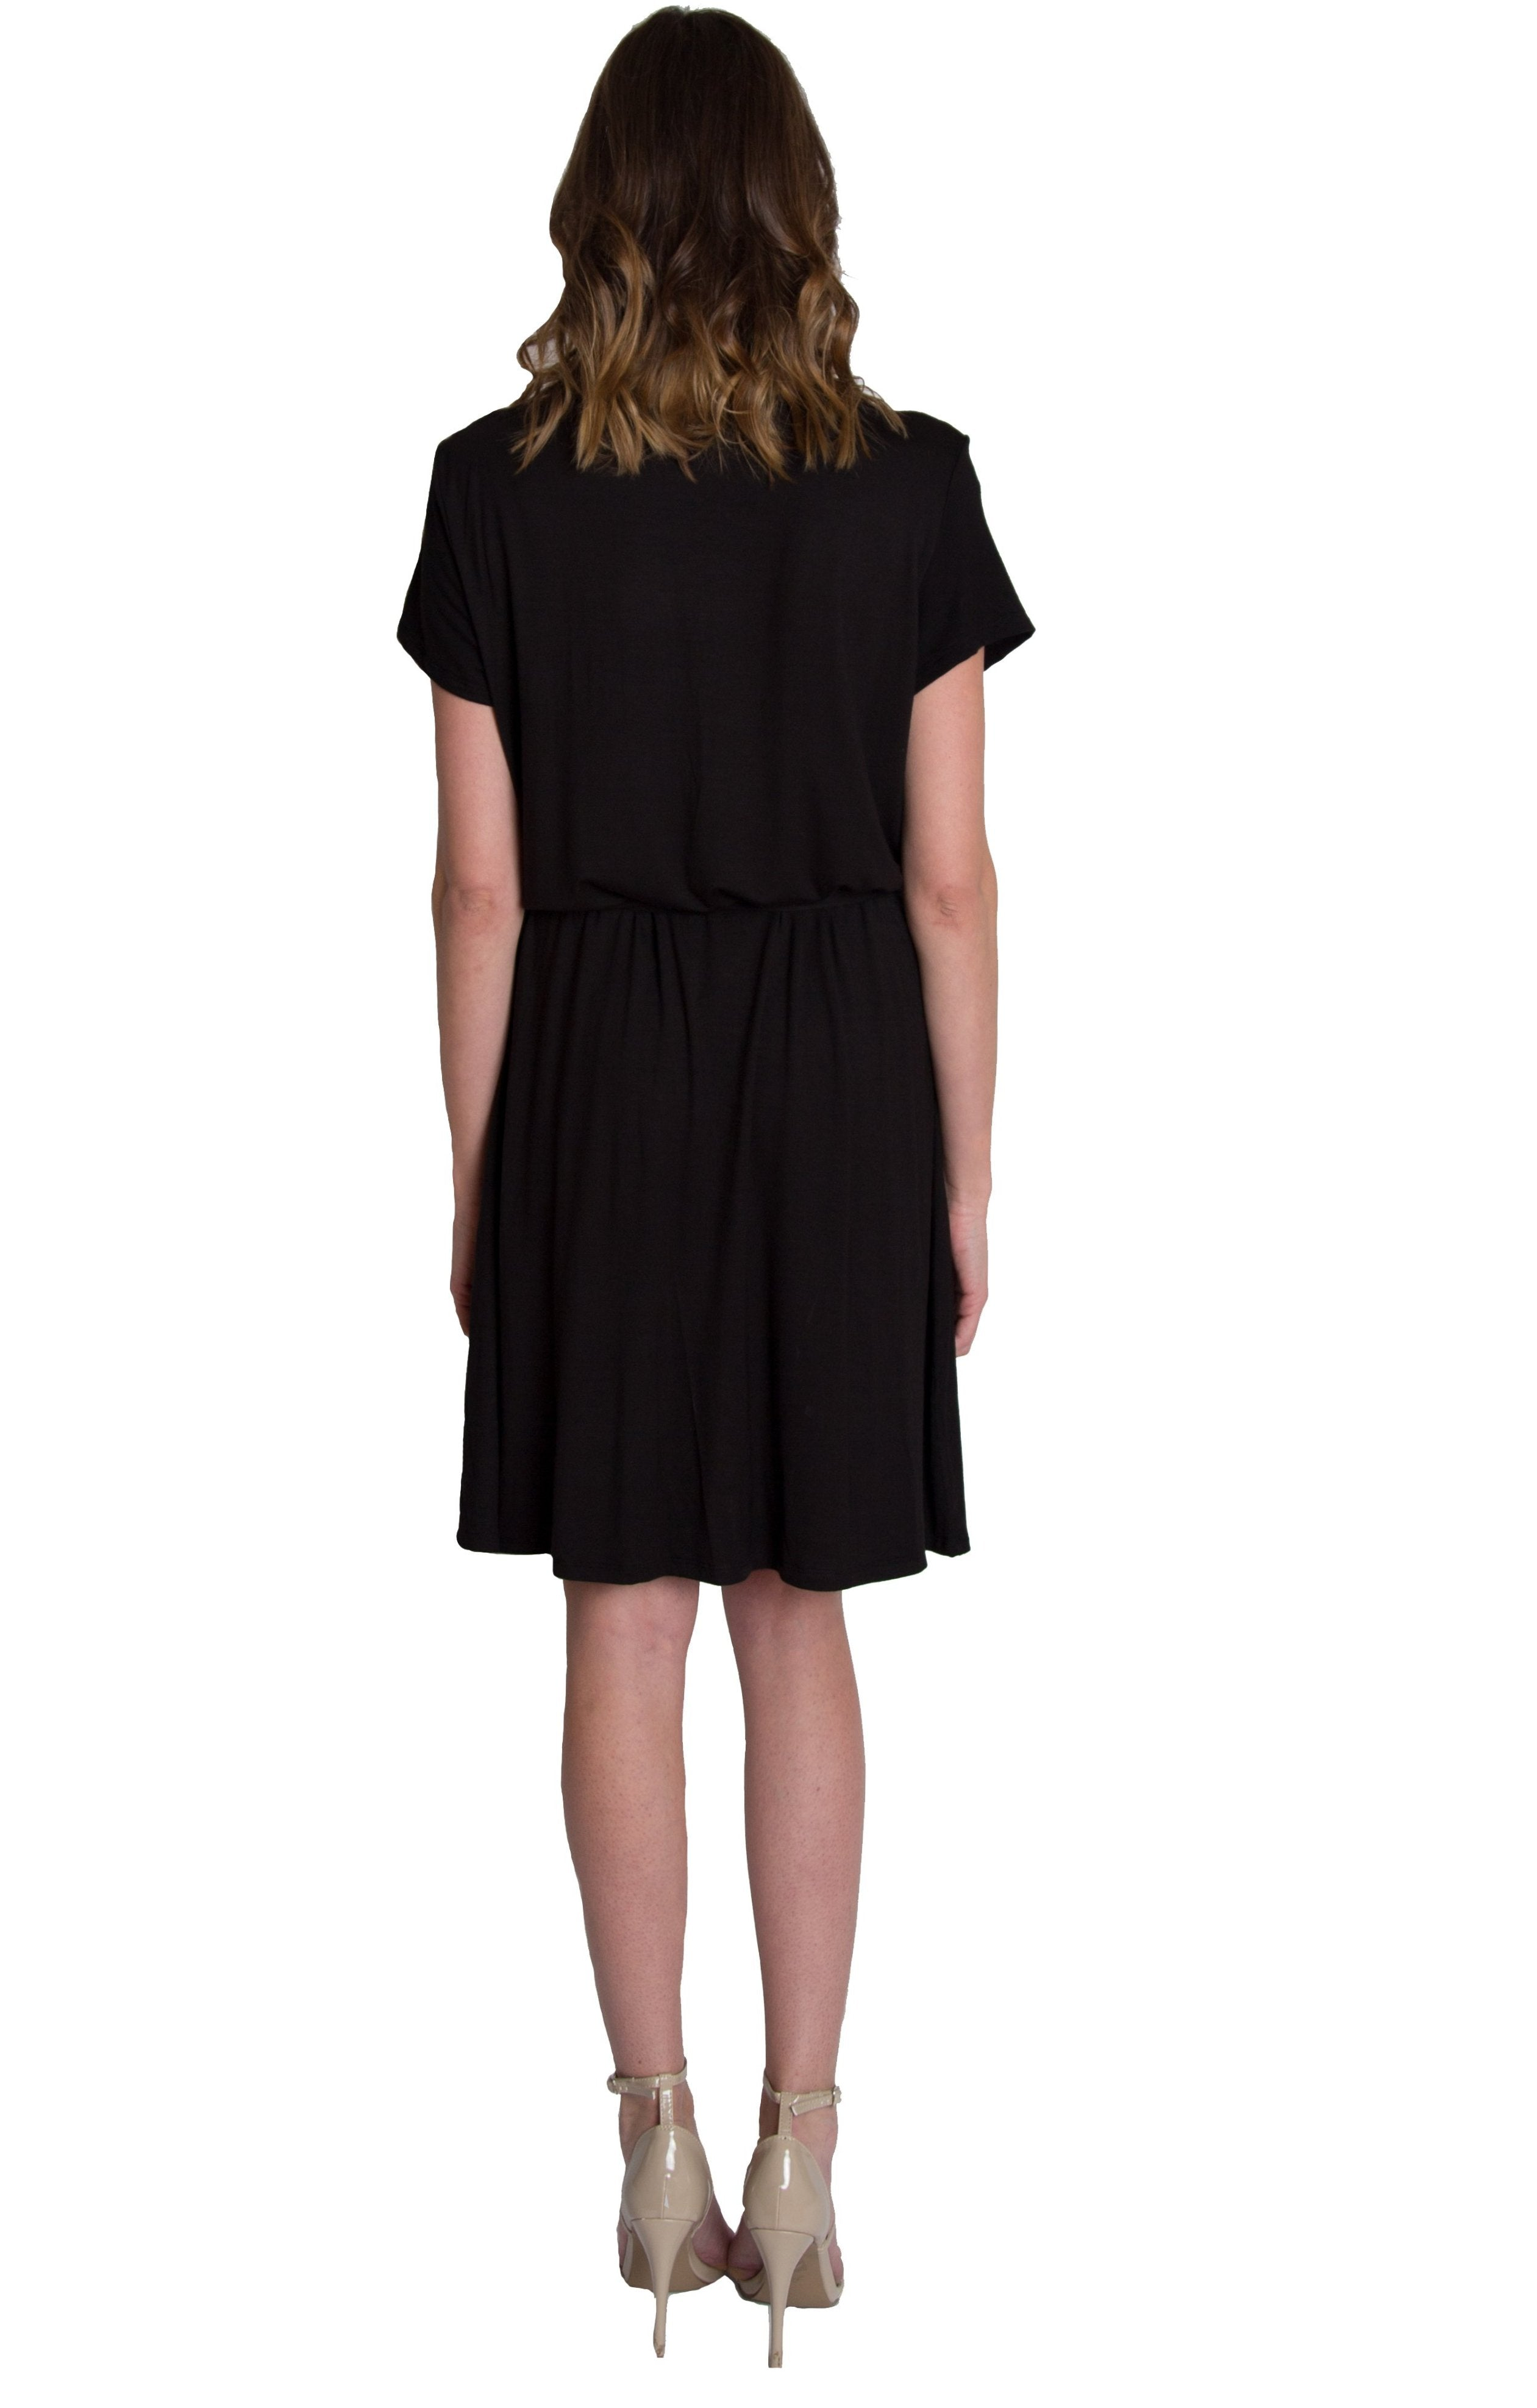 Nursing cowl dress in black by Udderly Hot Mama